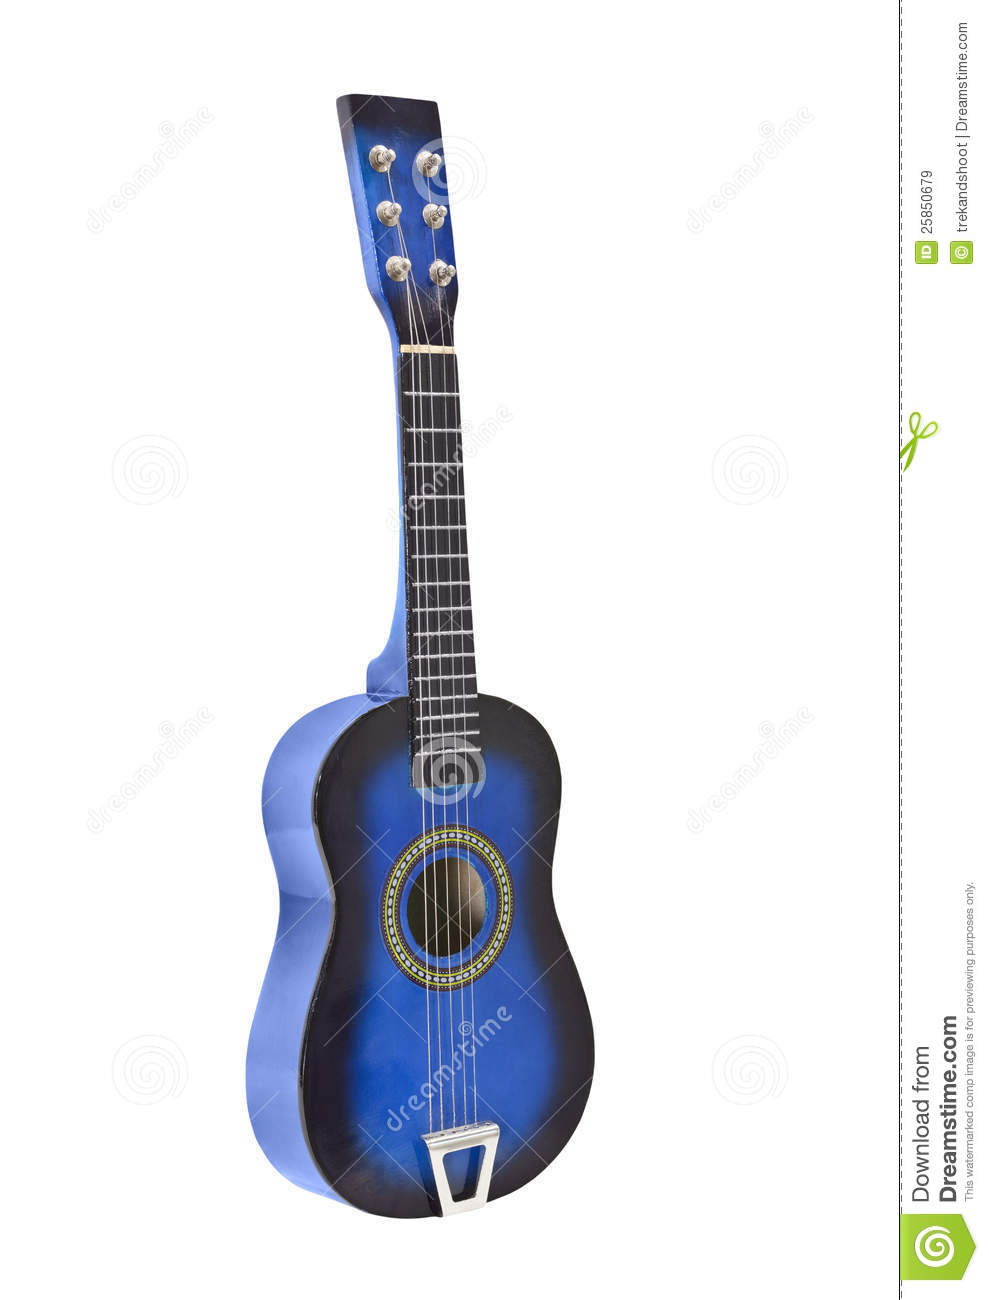 Toy Acoustic Guitar Isolated Royalty Free Stock Images